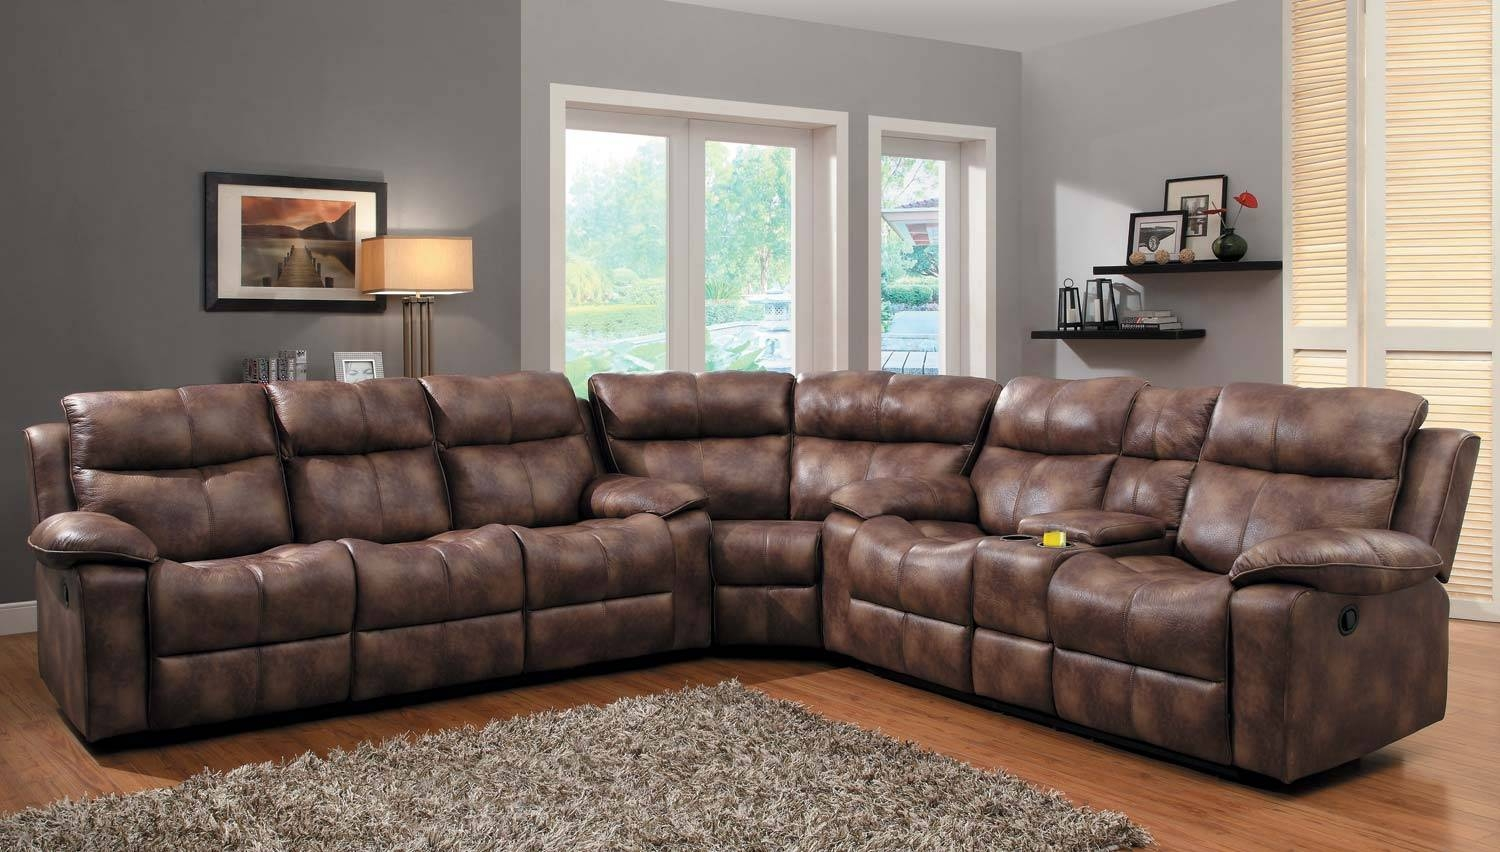 Enjoy In Recliner Sectional Sofa — Home Ideas Collection within Sectional Sofa Recliners (Image 3 of 30)